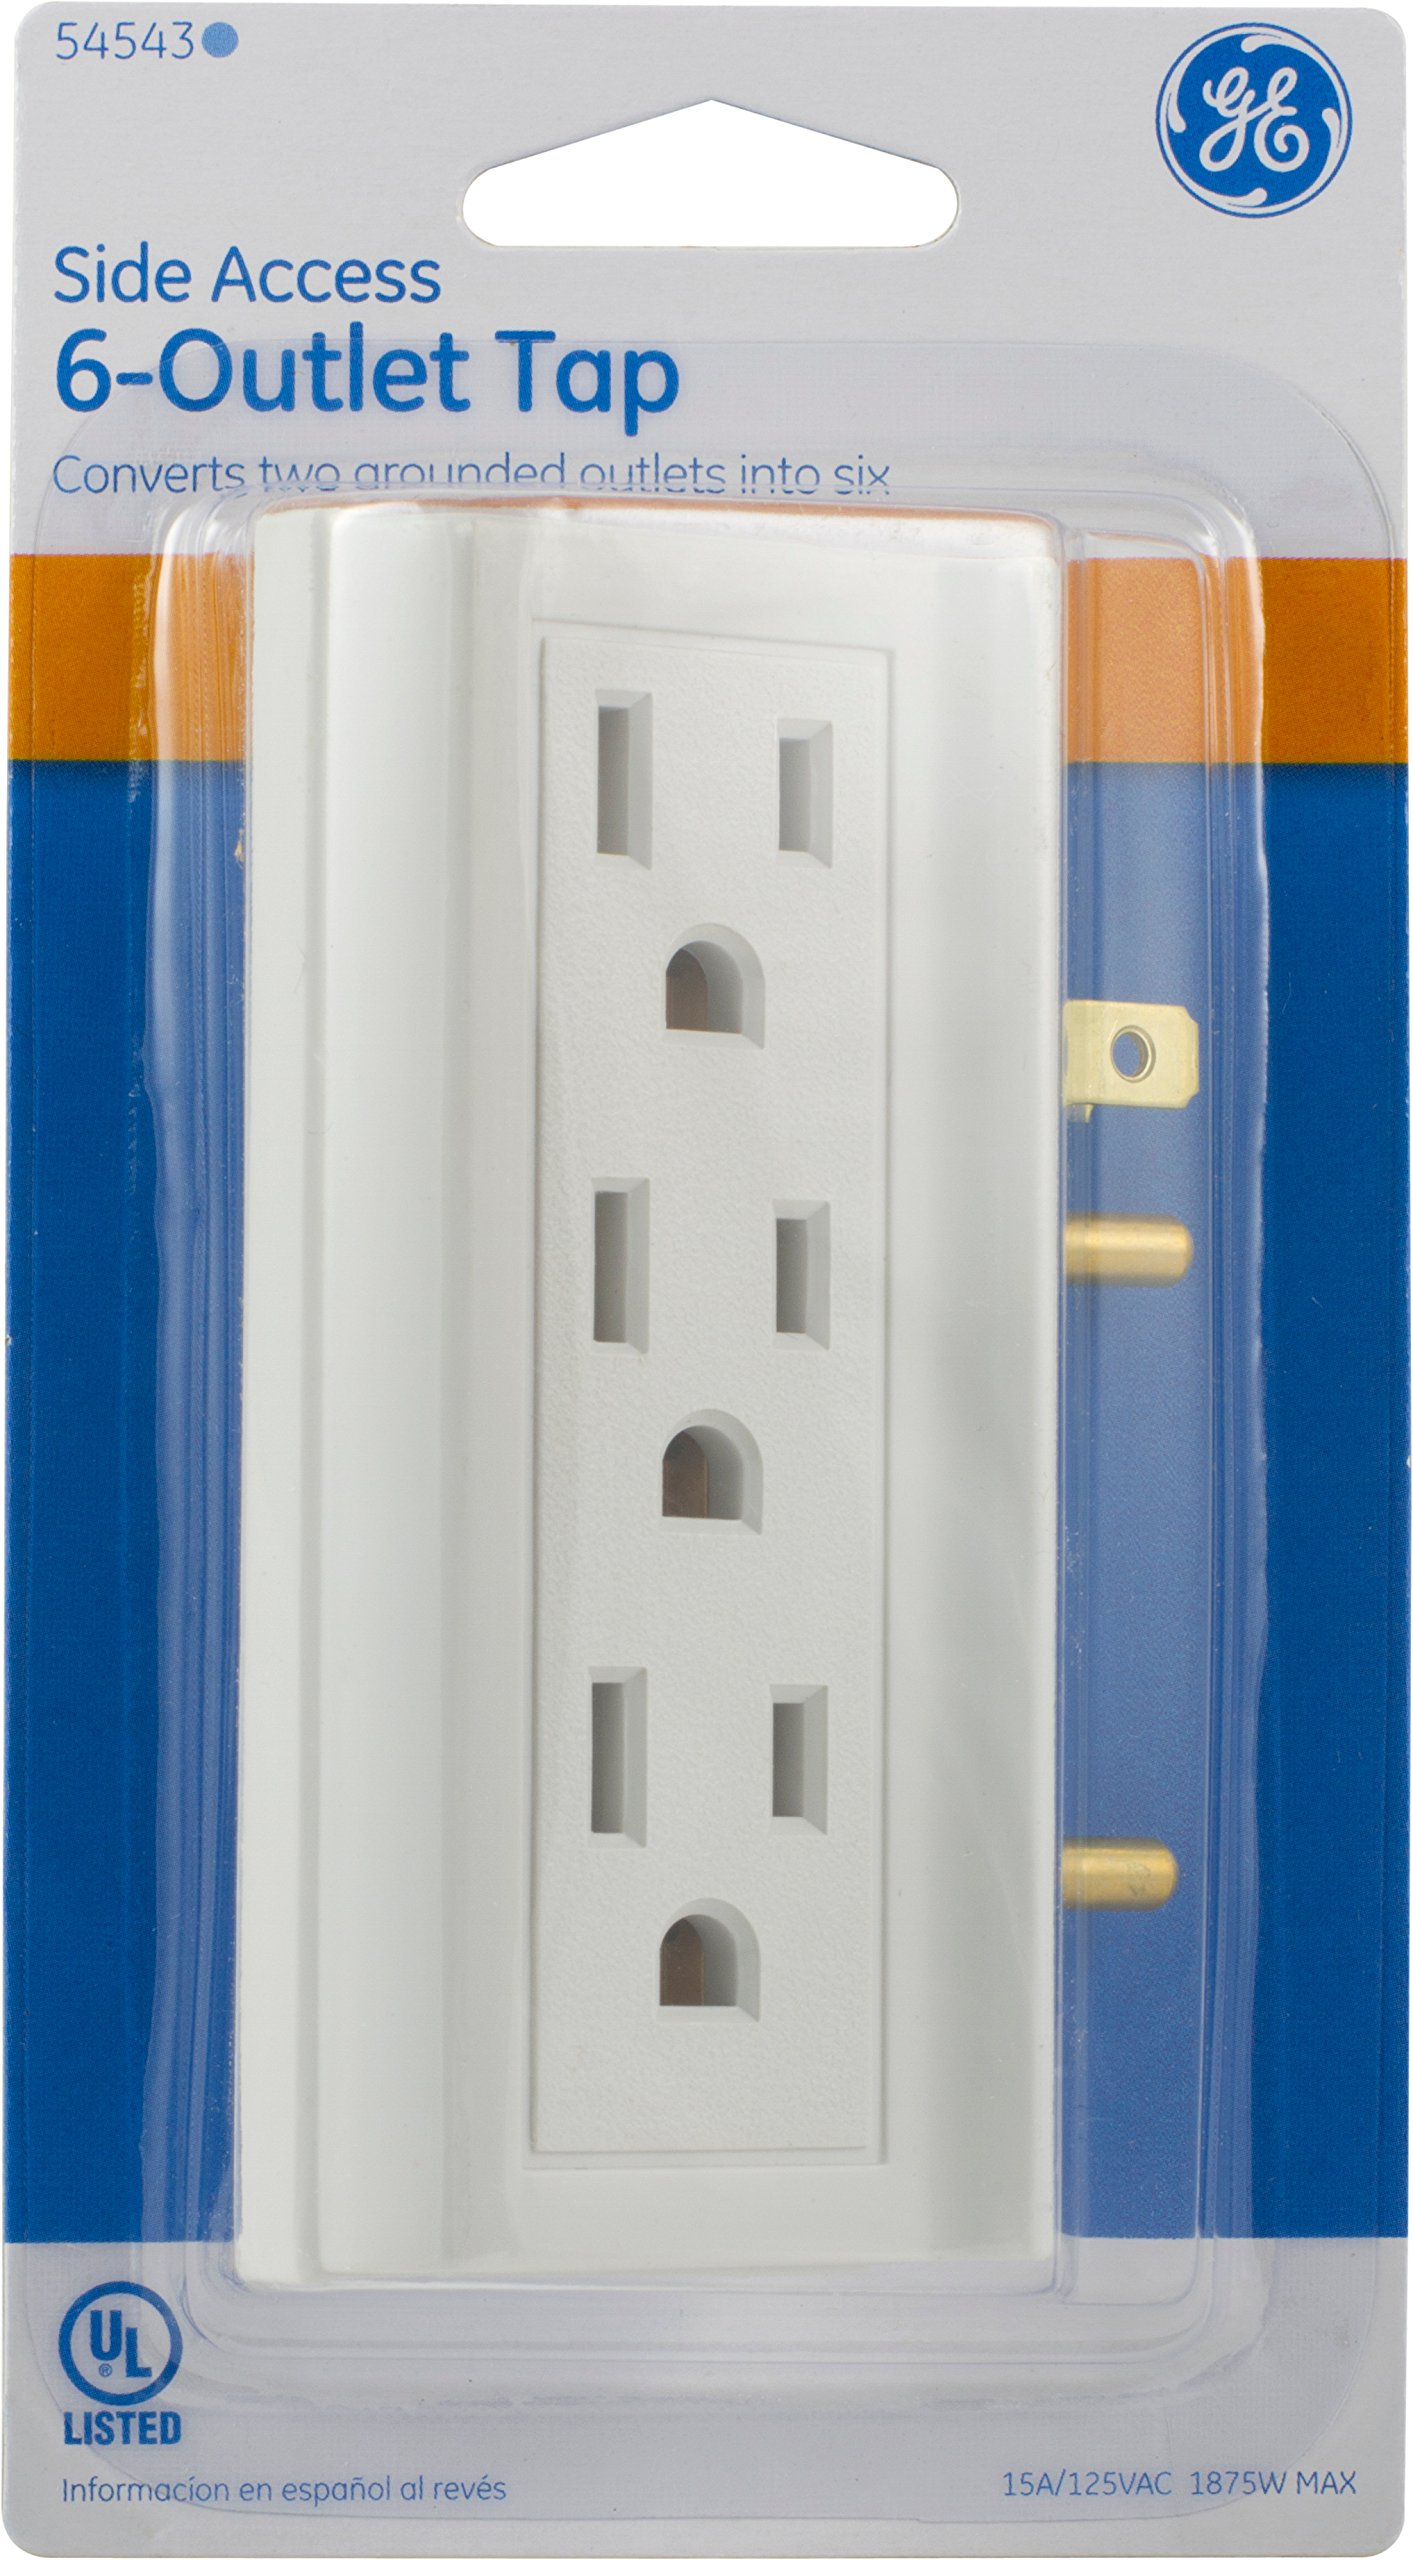 Ge Access Adapter Wall Tap Turn 2 6 3 Prong Outlets On Both Sides Vs Indoor Rated Ul Listed White 54543 Multi Tools Home